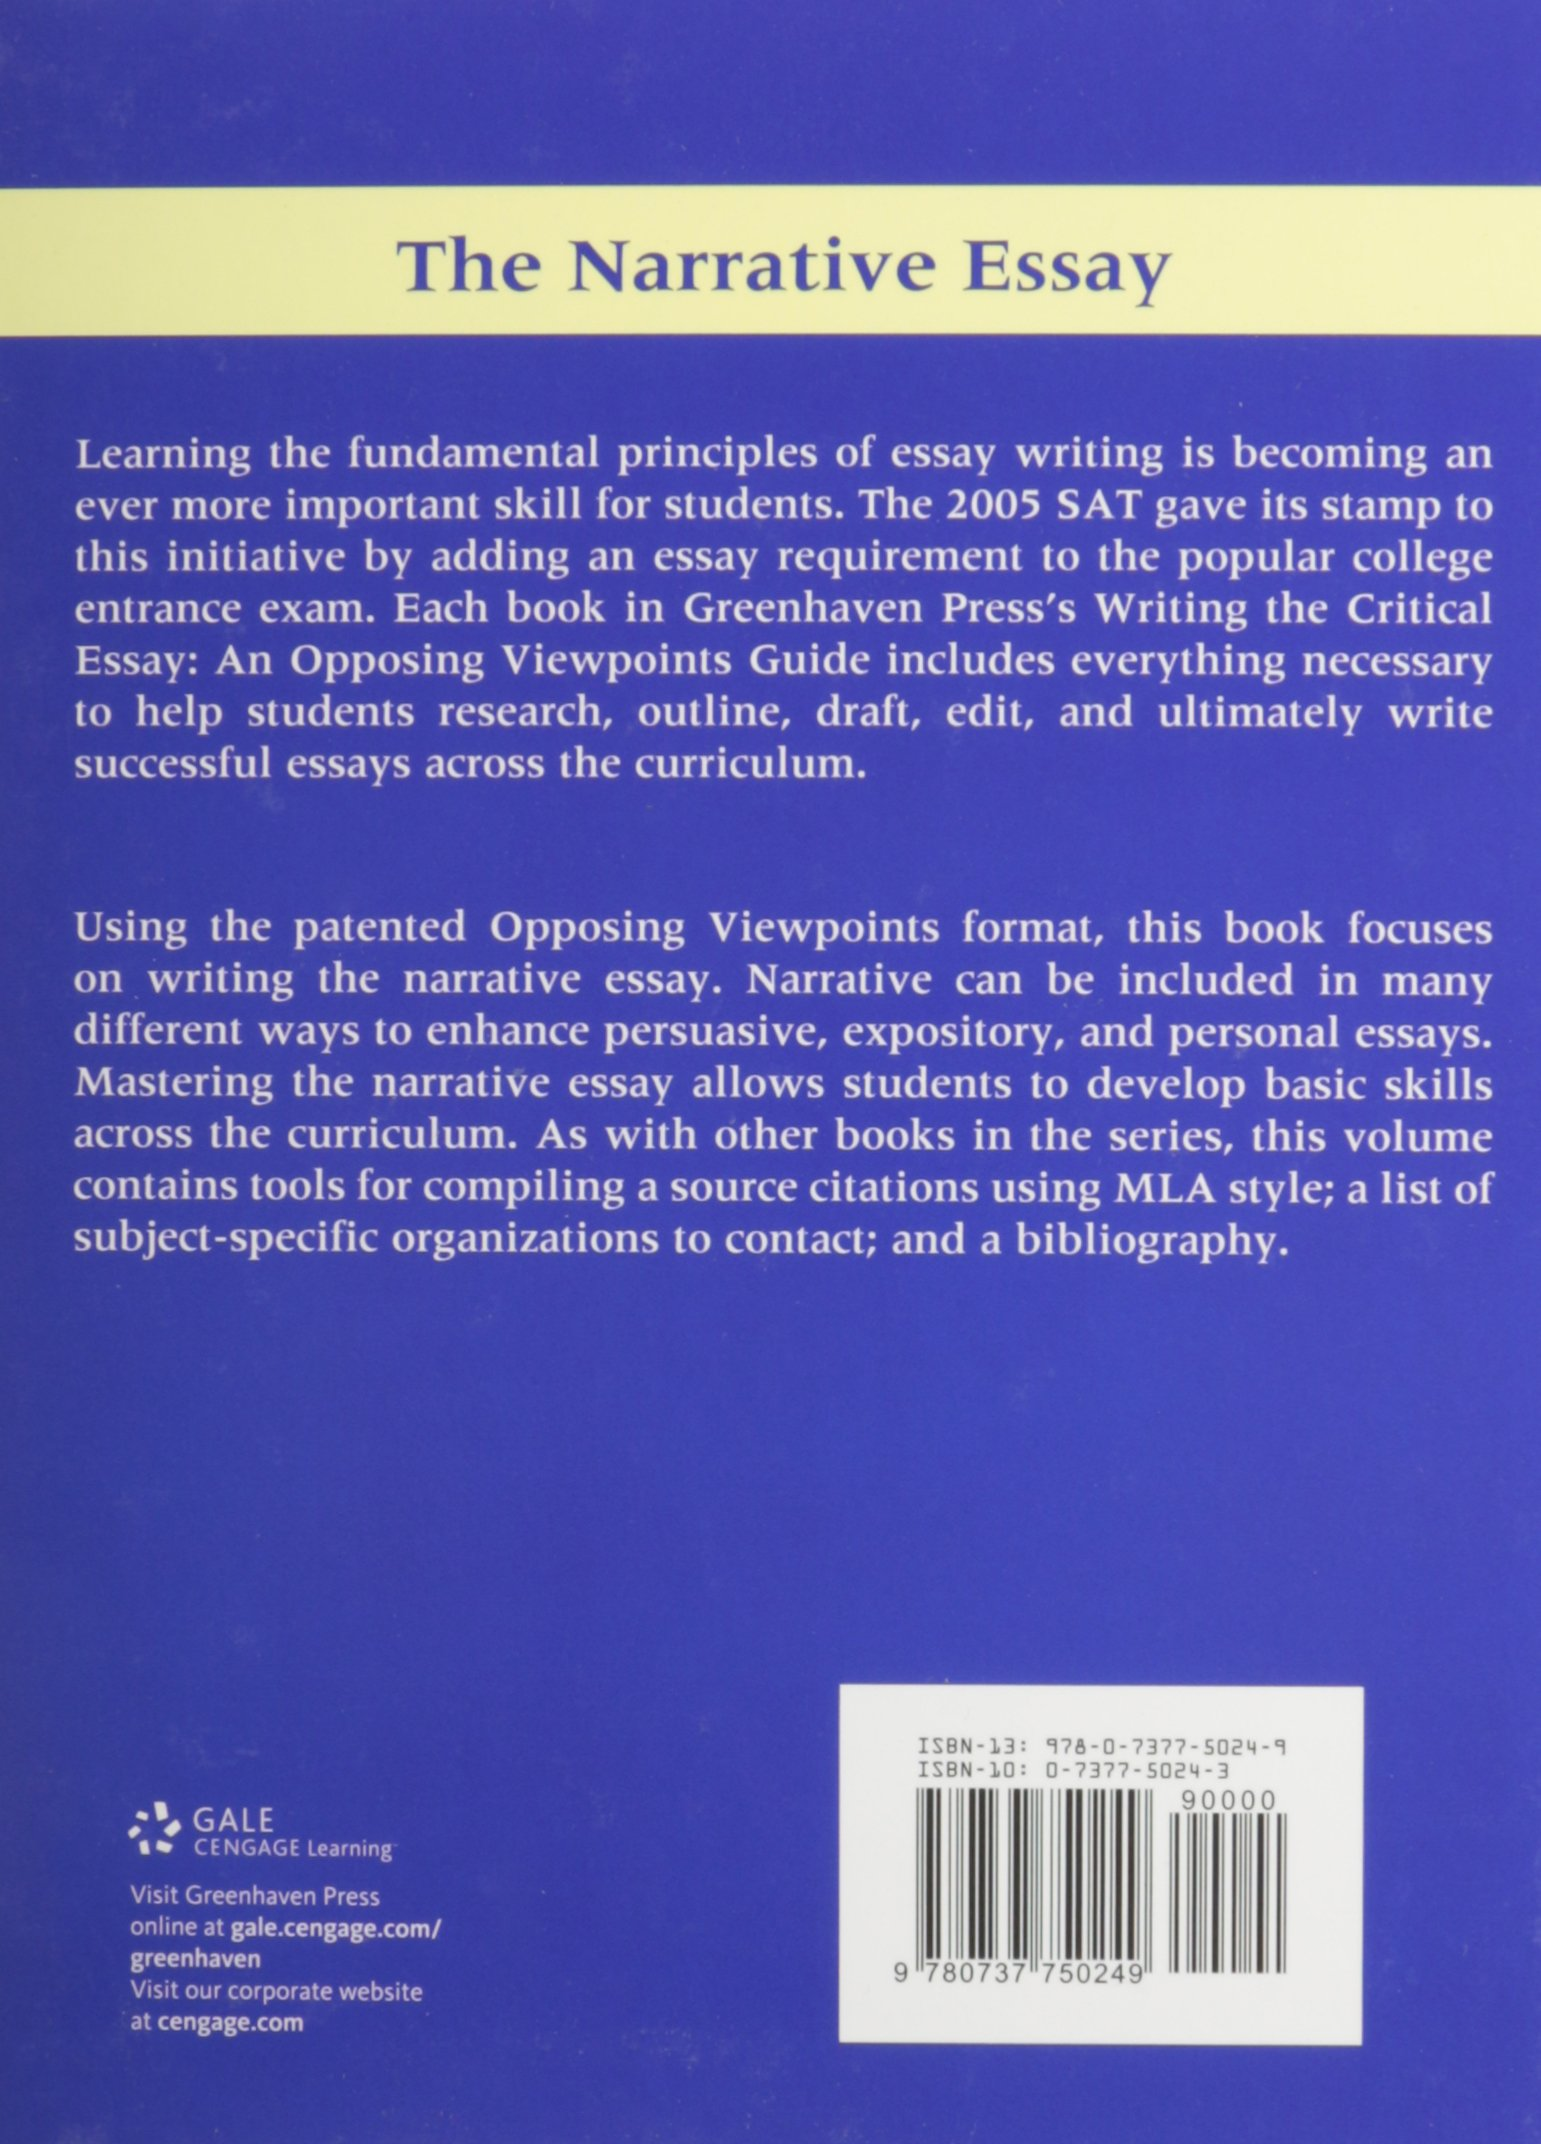 com bullying writing the critical essay  com bullying writing the critical essay 9780737750249 lauri s friedman books